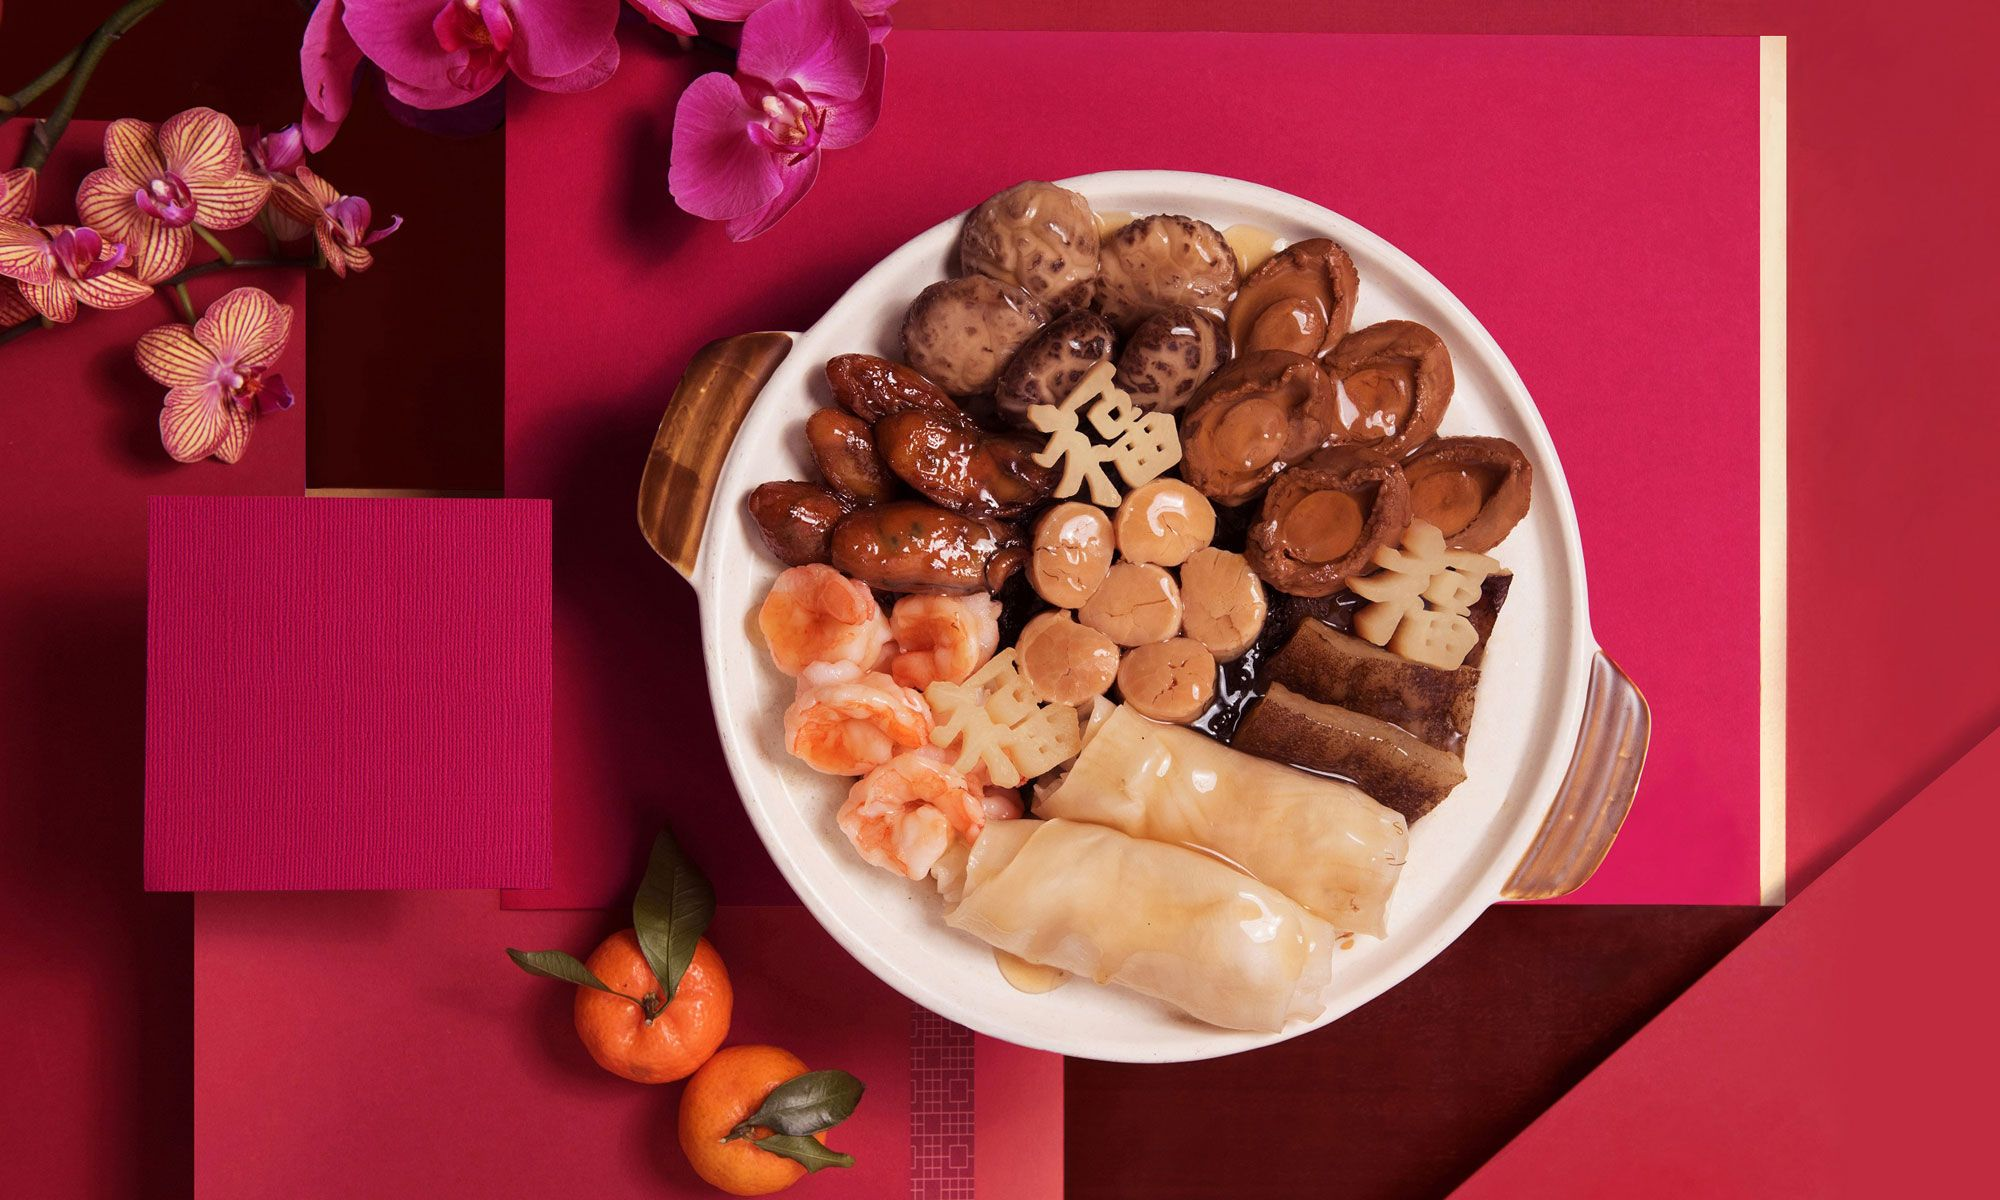 Ring In The Year Of The Pig With Auspicious Delicacies At Dynasty